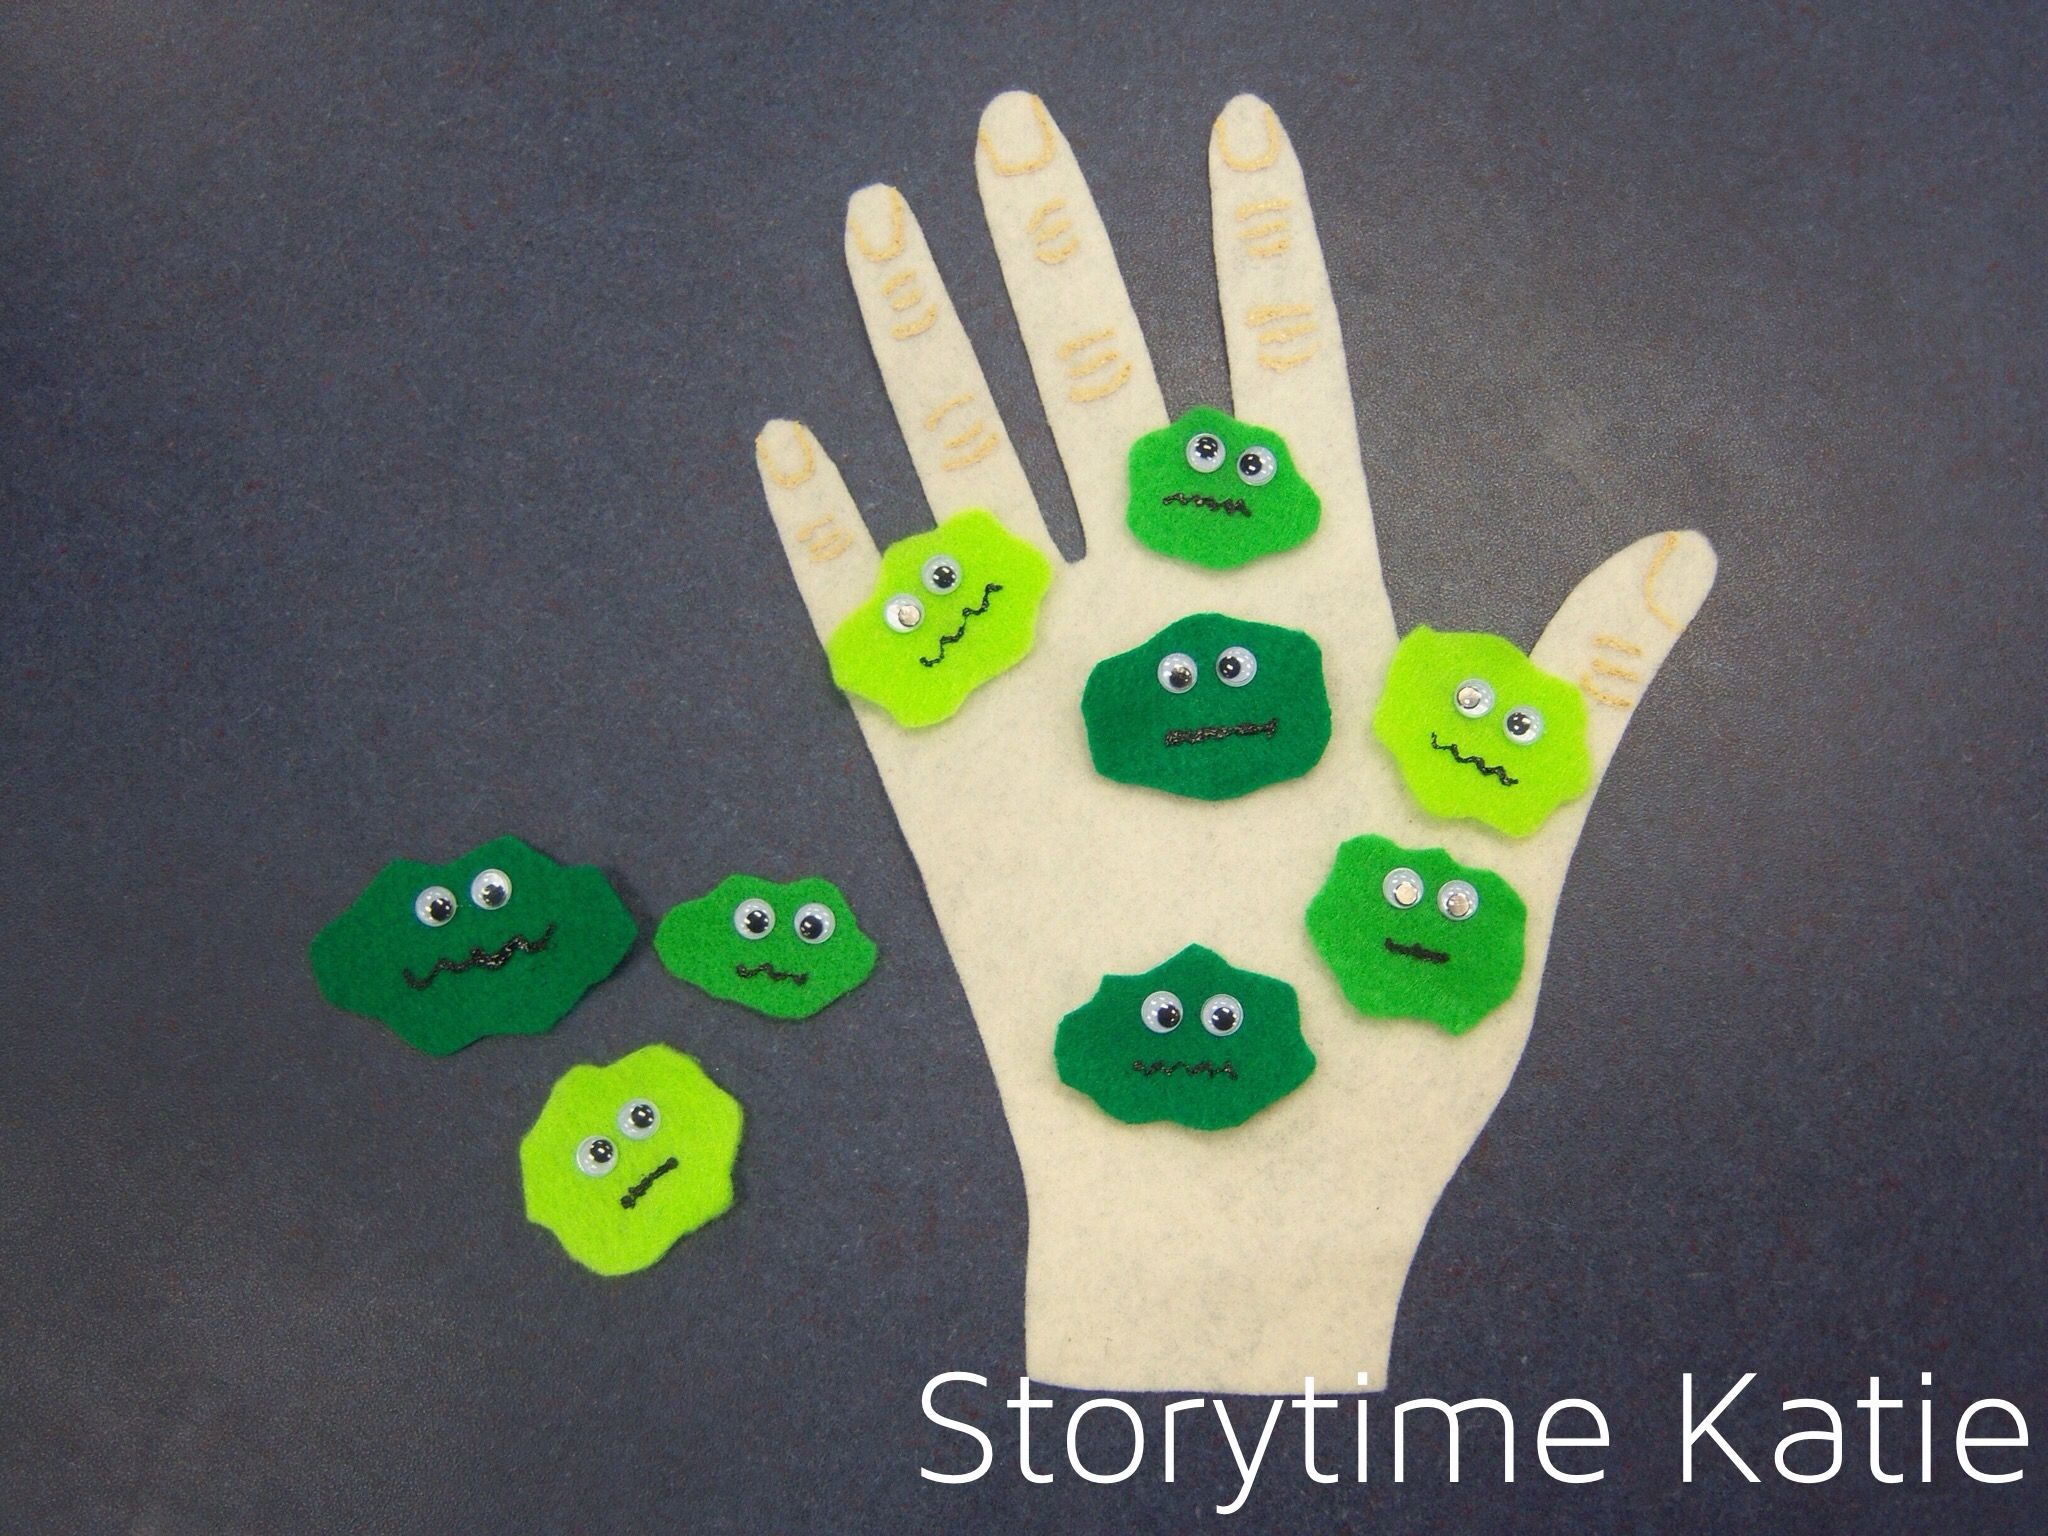 All The Little Germs By Storytime Katie Quick And Clever